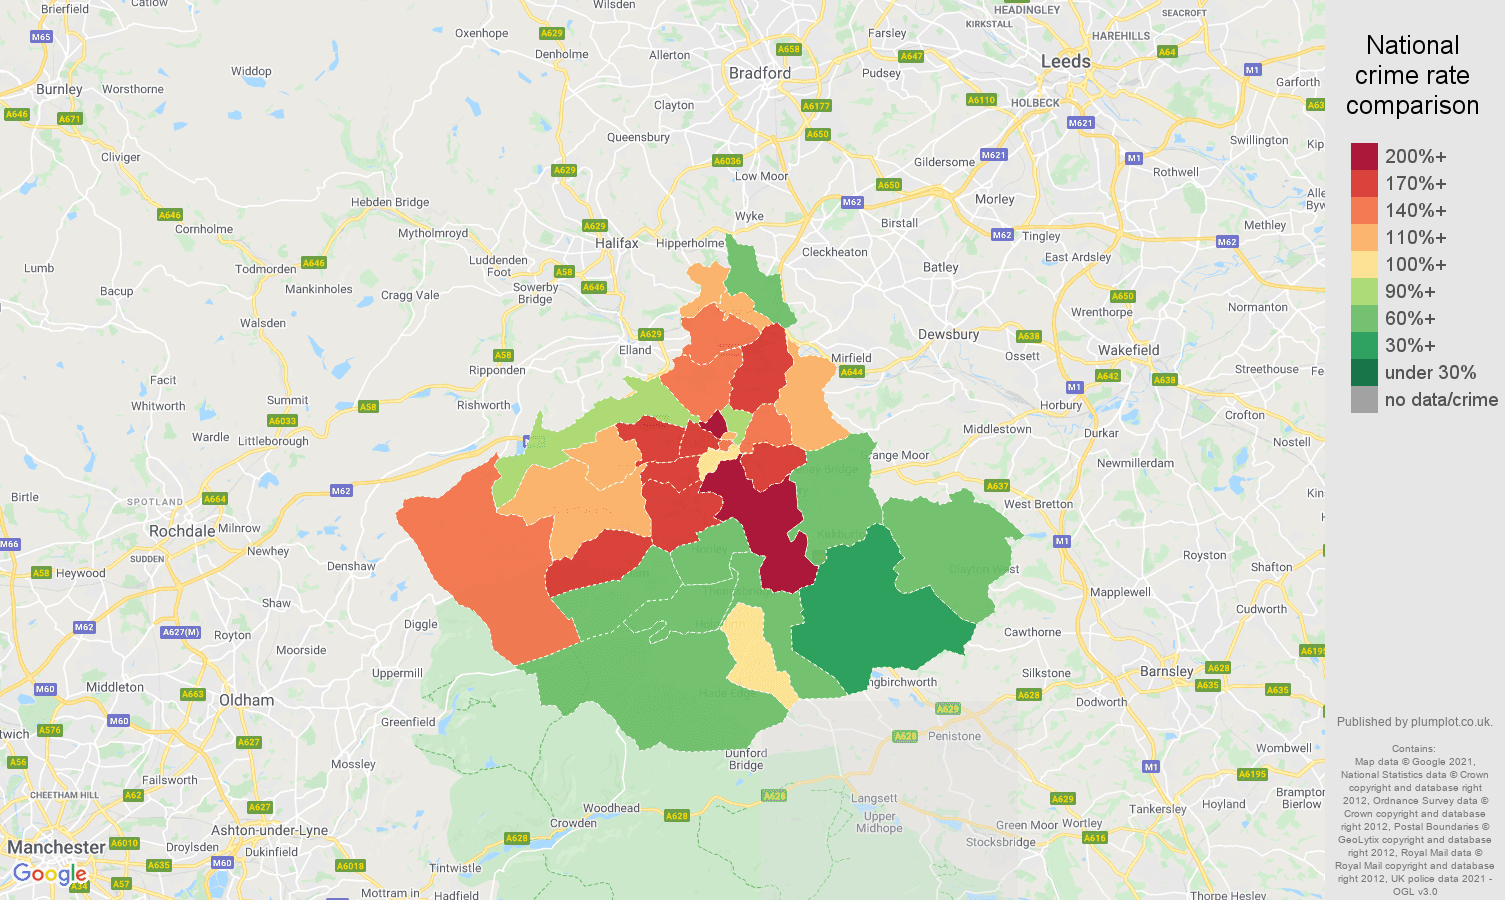 Huddersfield violent crime rate comparison map